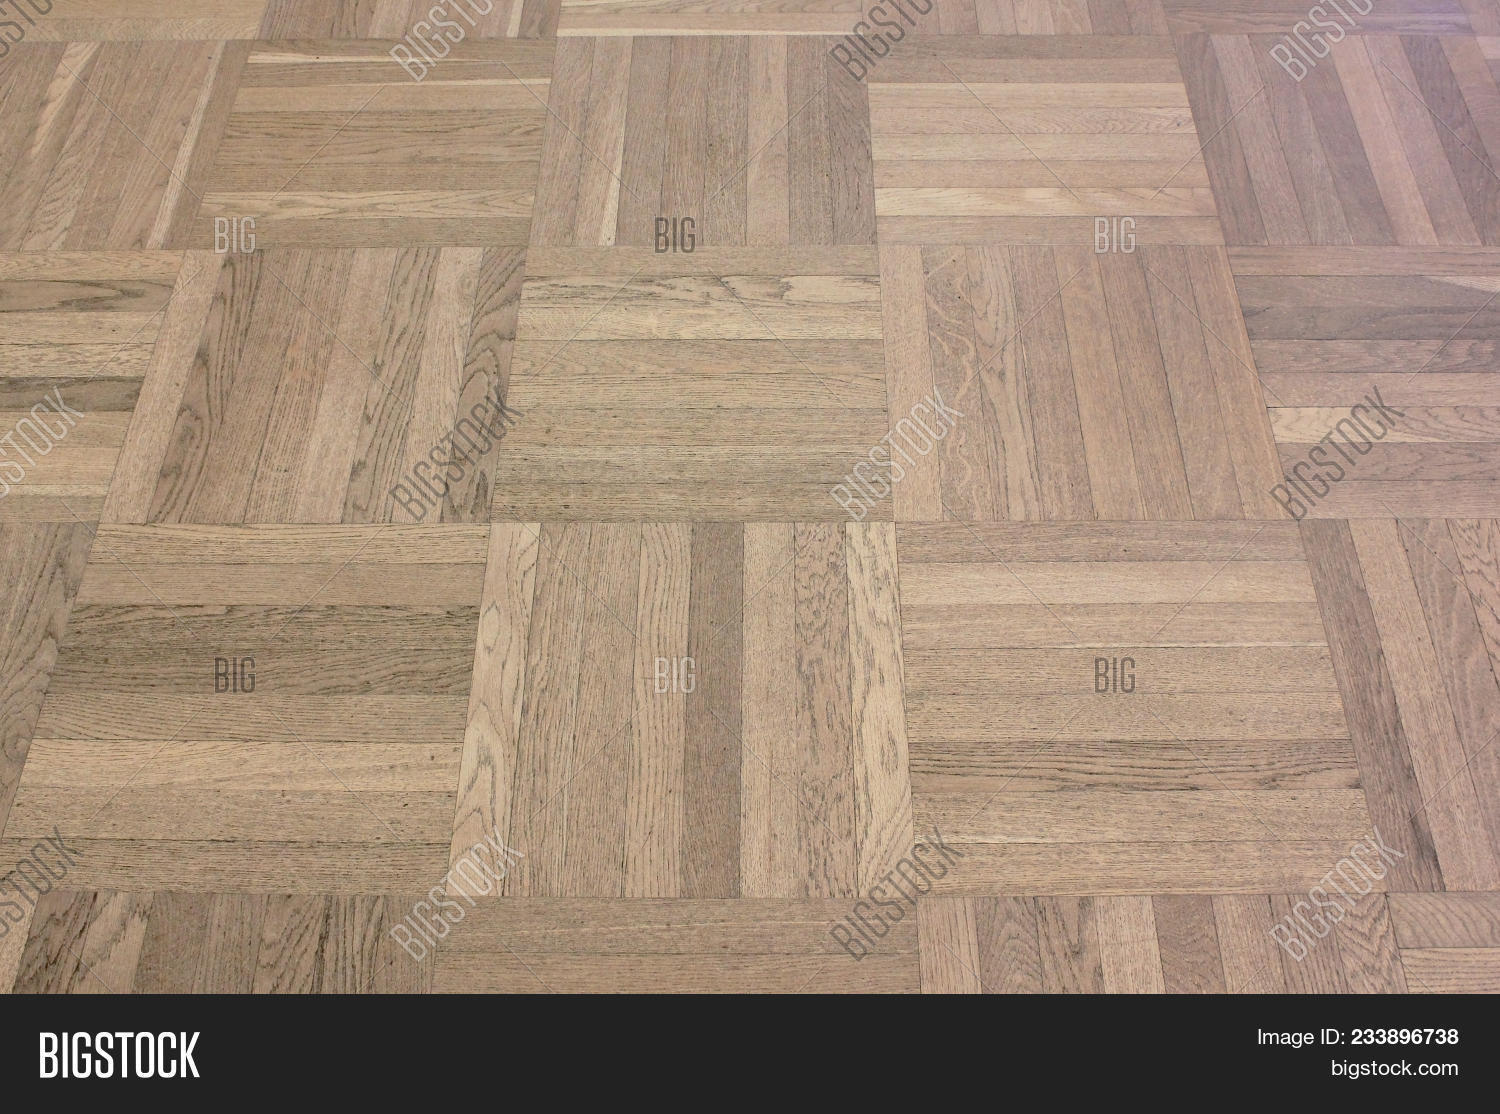 Wood Floor Texture Timber Pattern Background Hardwood Maple Natural Wooden Detailed Seamles